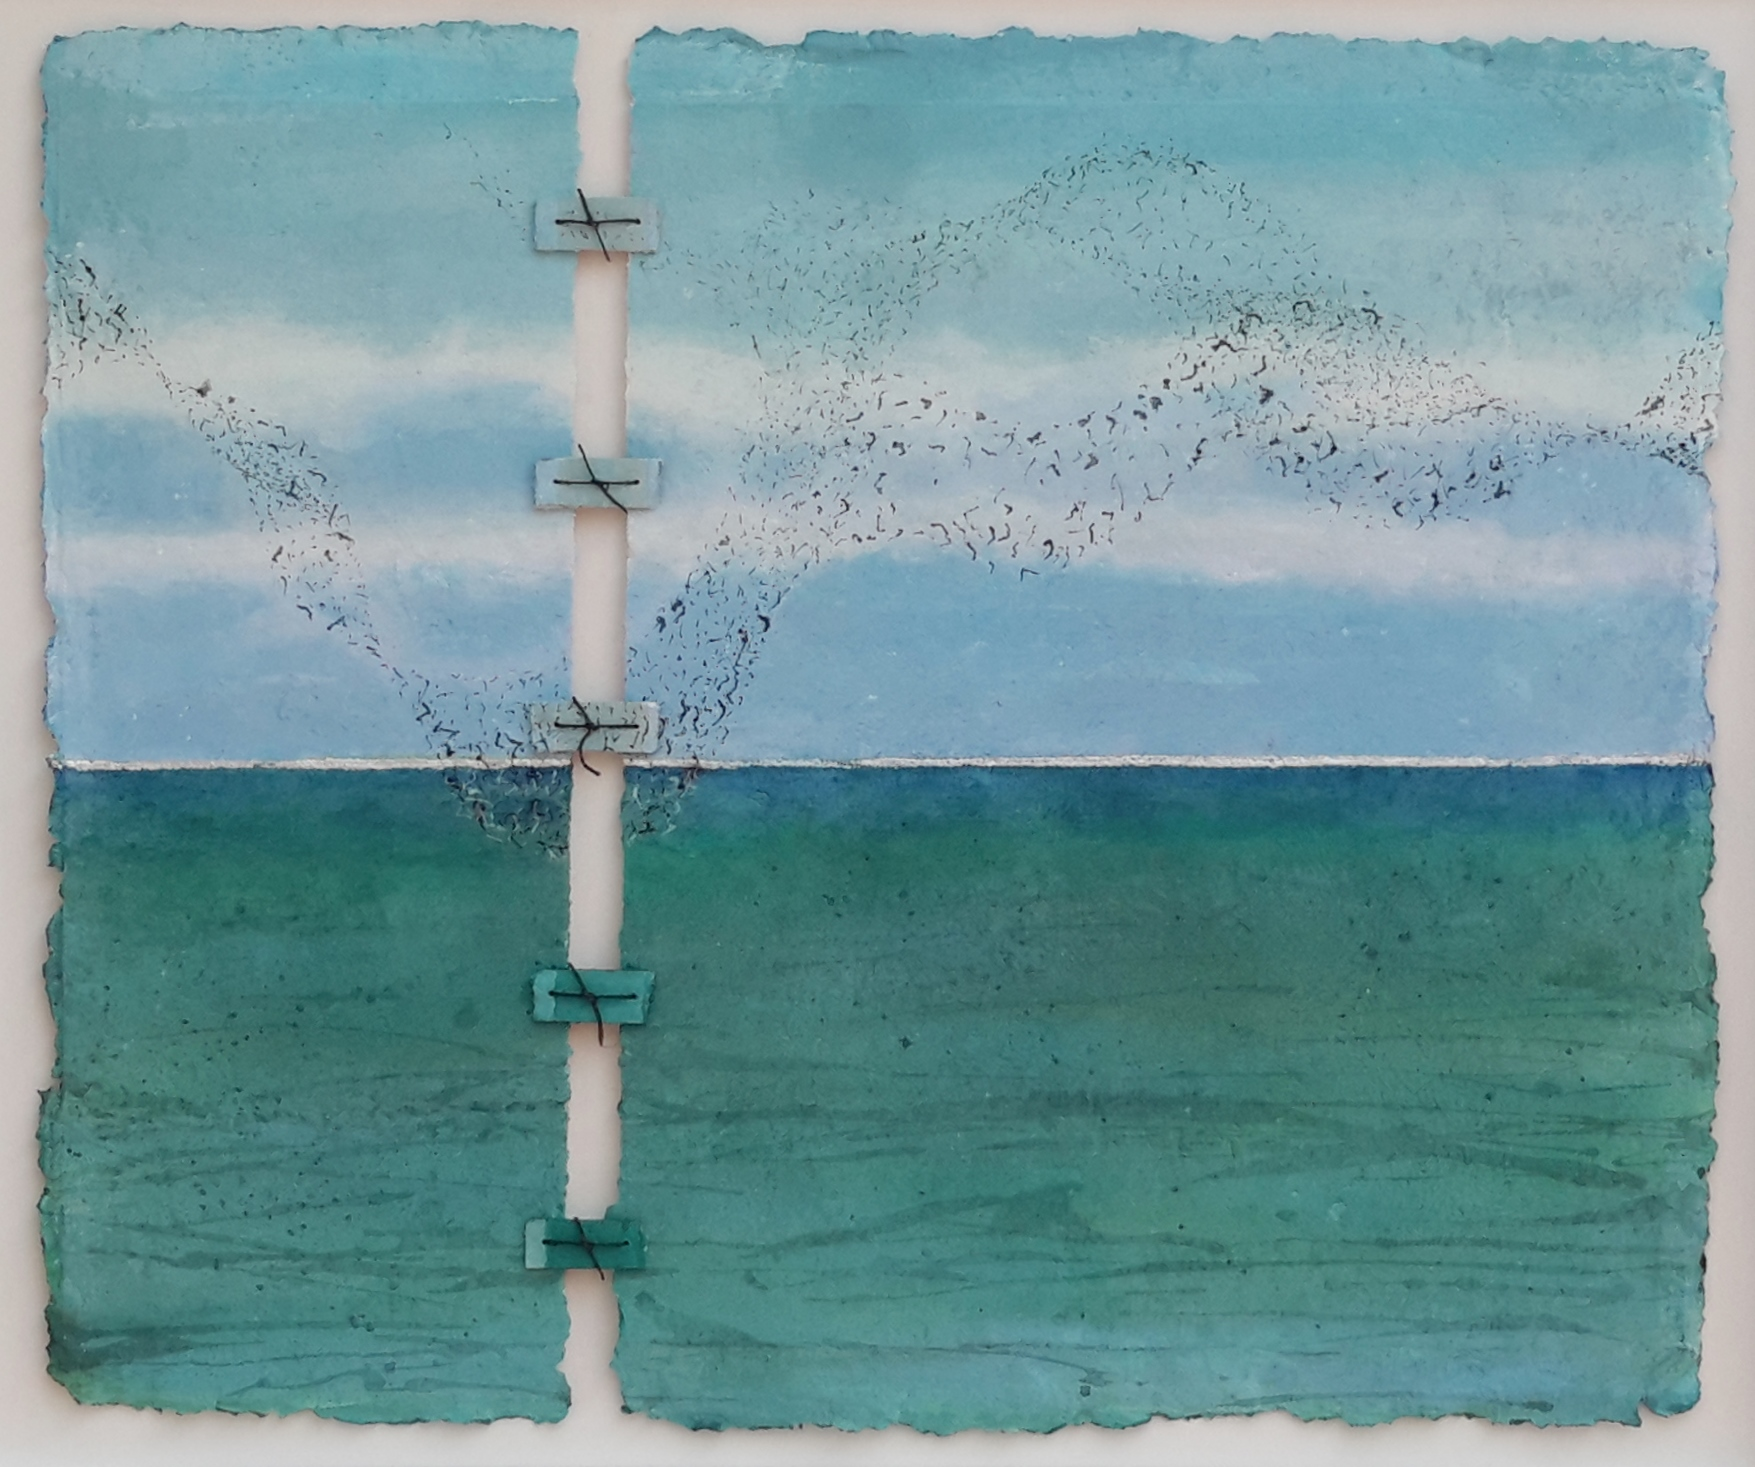 new art sea-view with starlings